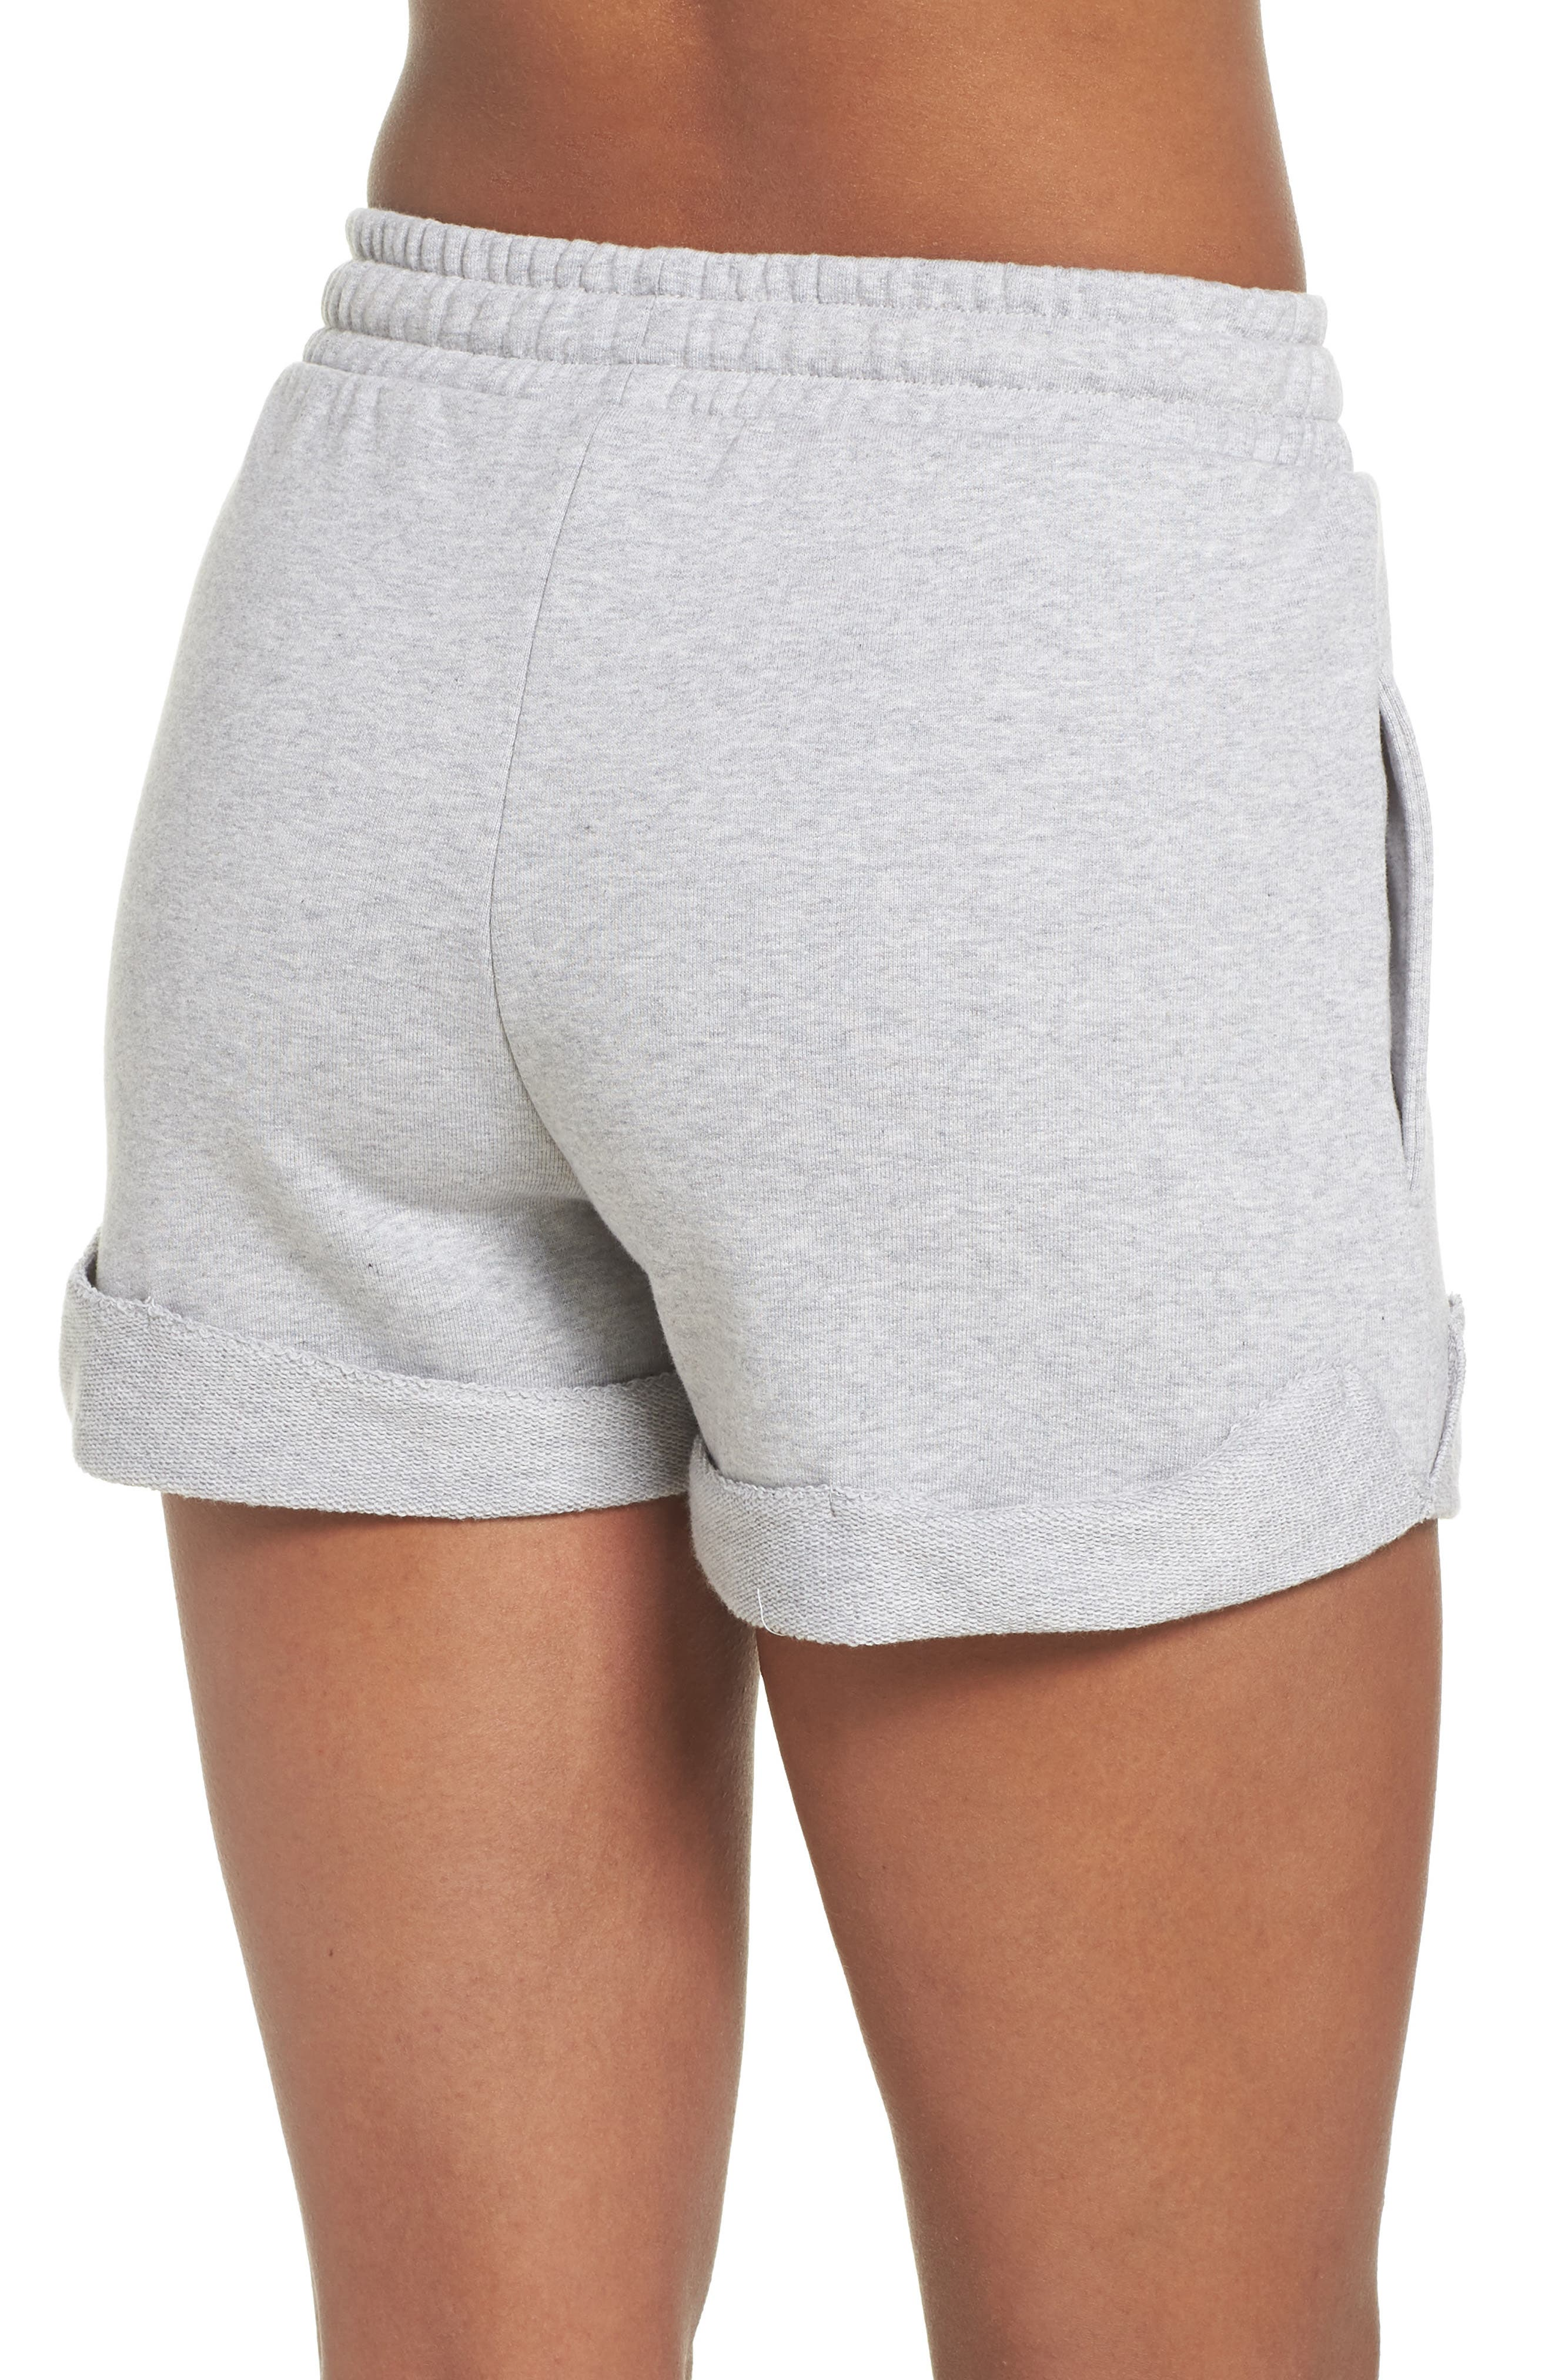 French Terry High Waist Shorts,                             Alternate thumbnail 2, color,                             Light Grey Marl